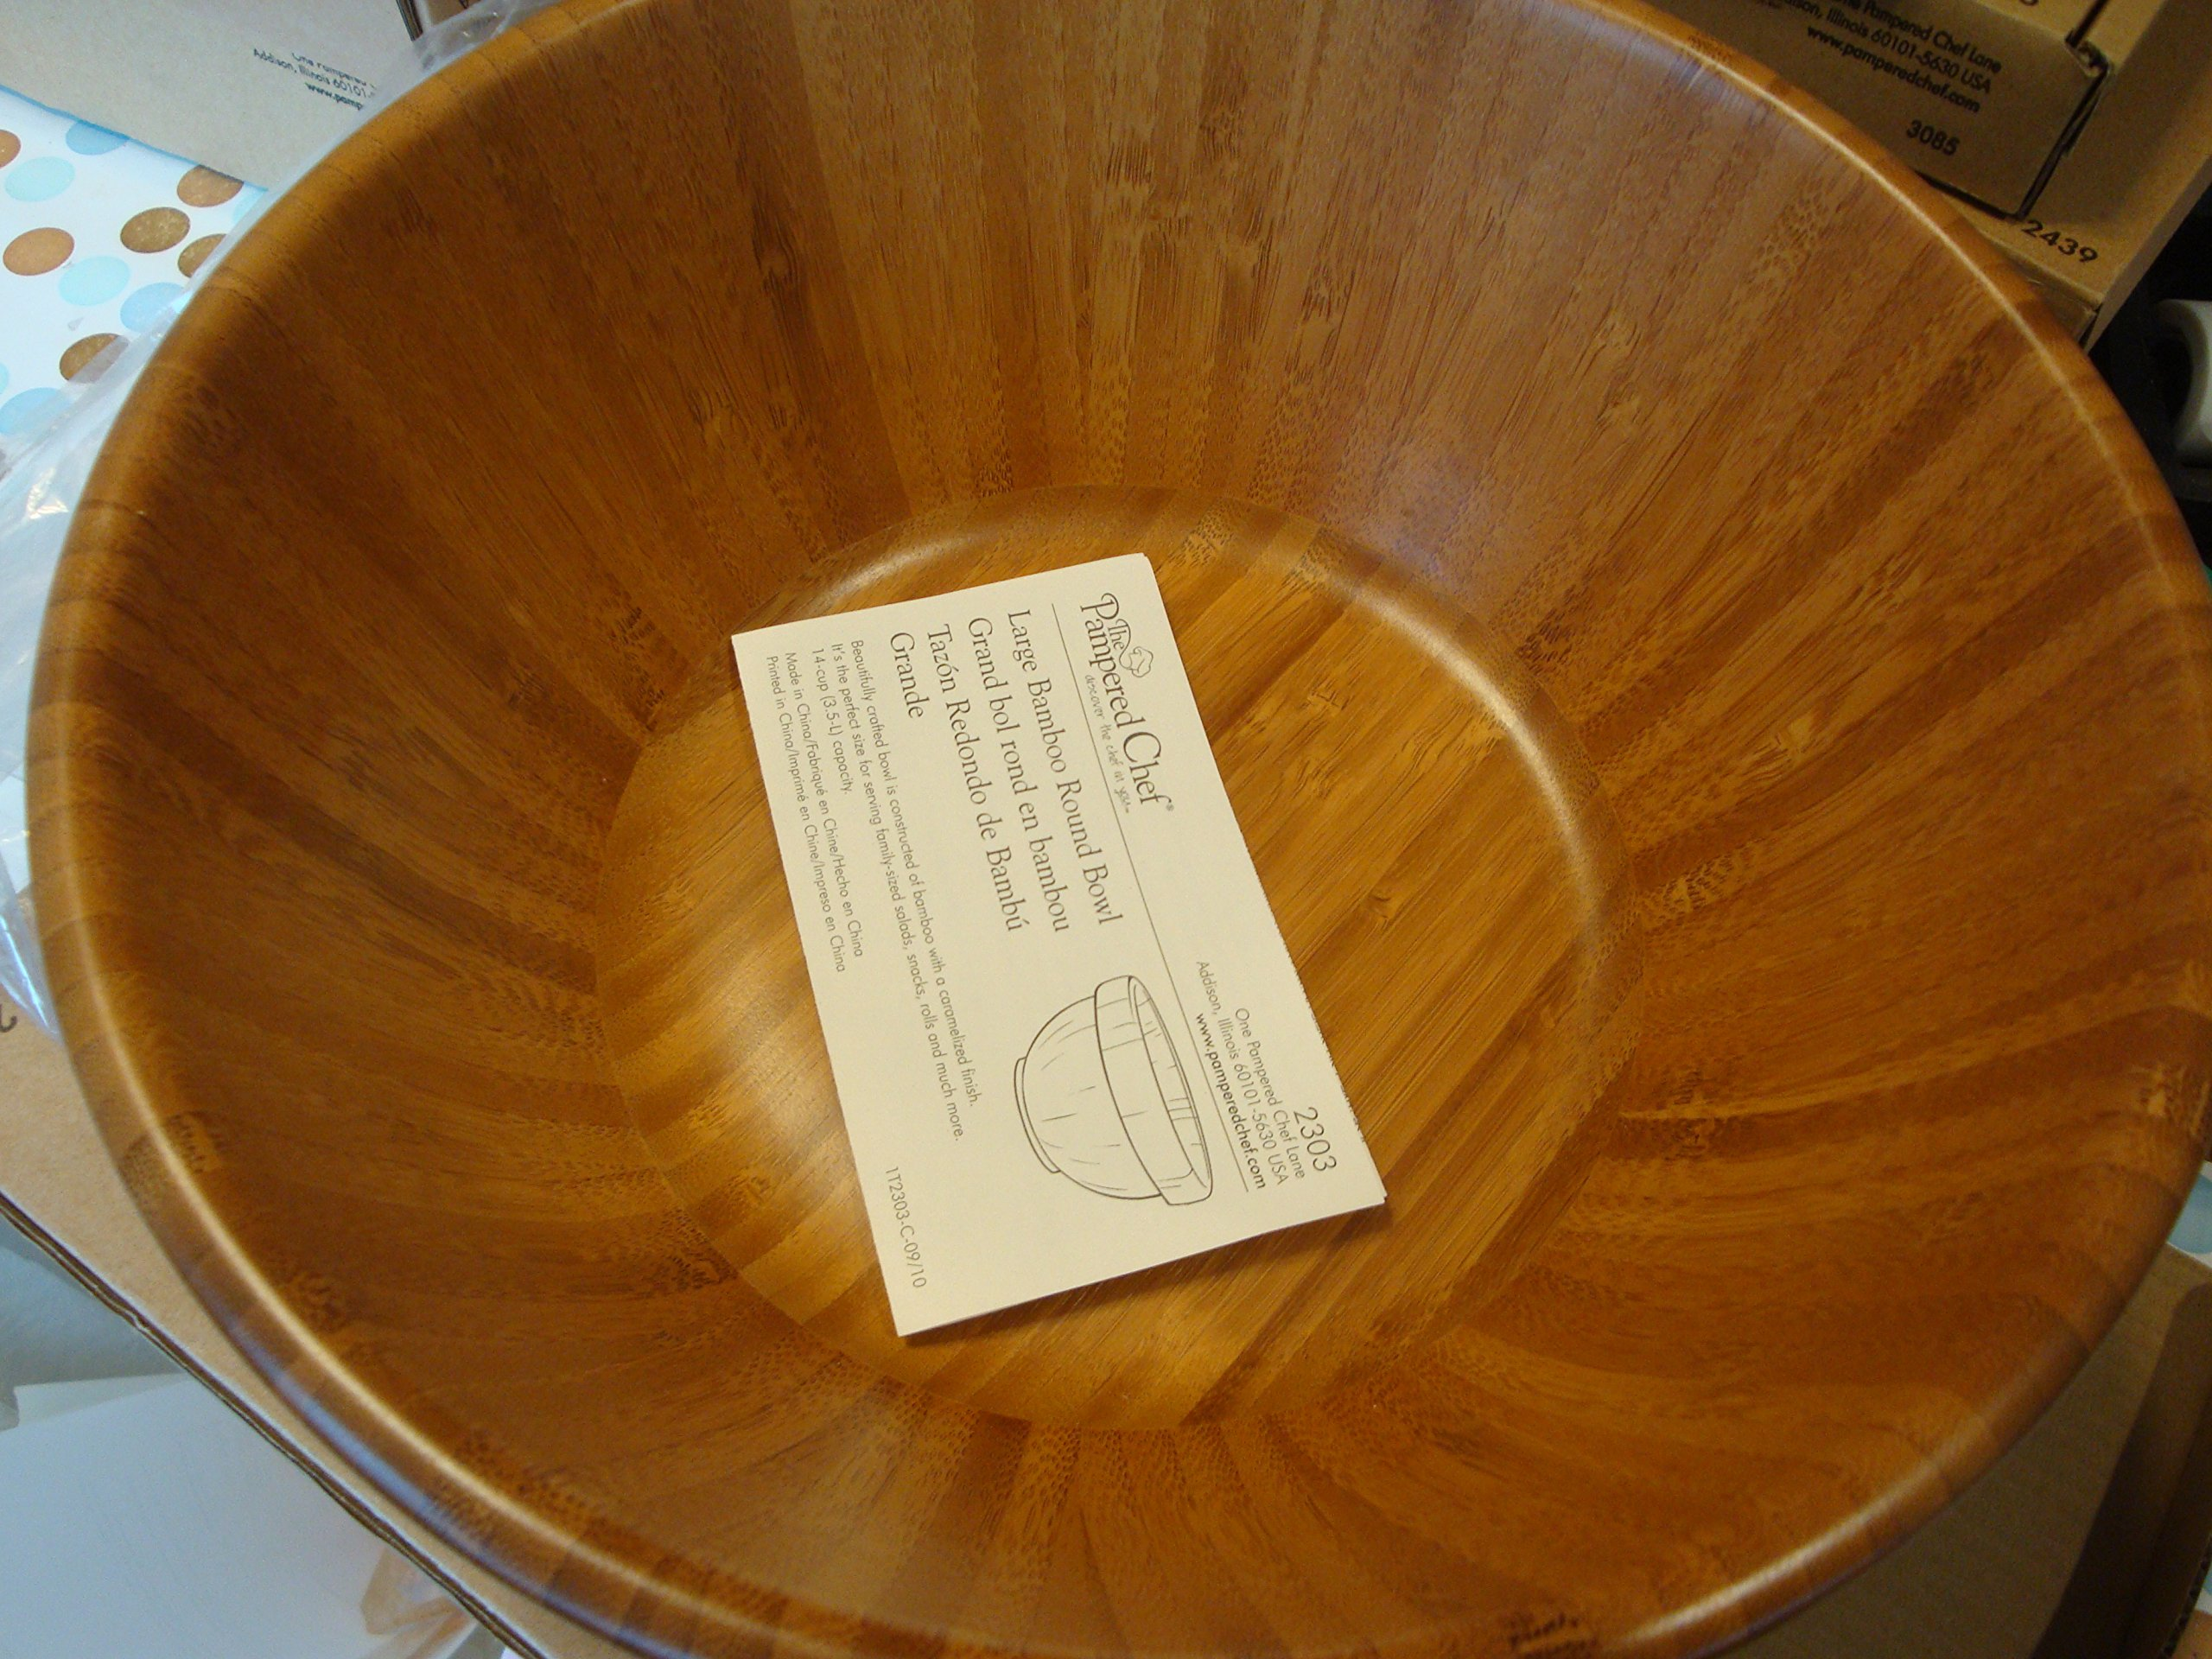 Pampered Chef Large Bamboo Round Bowl